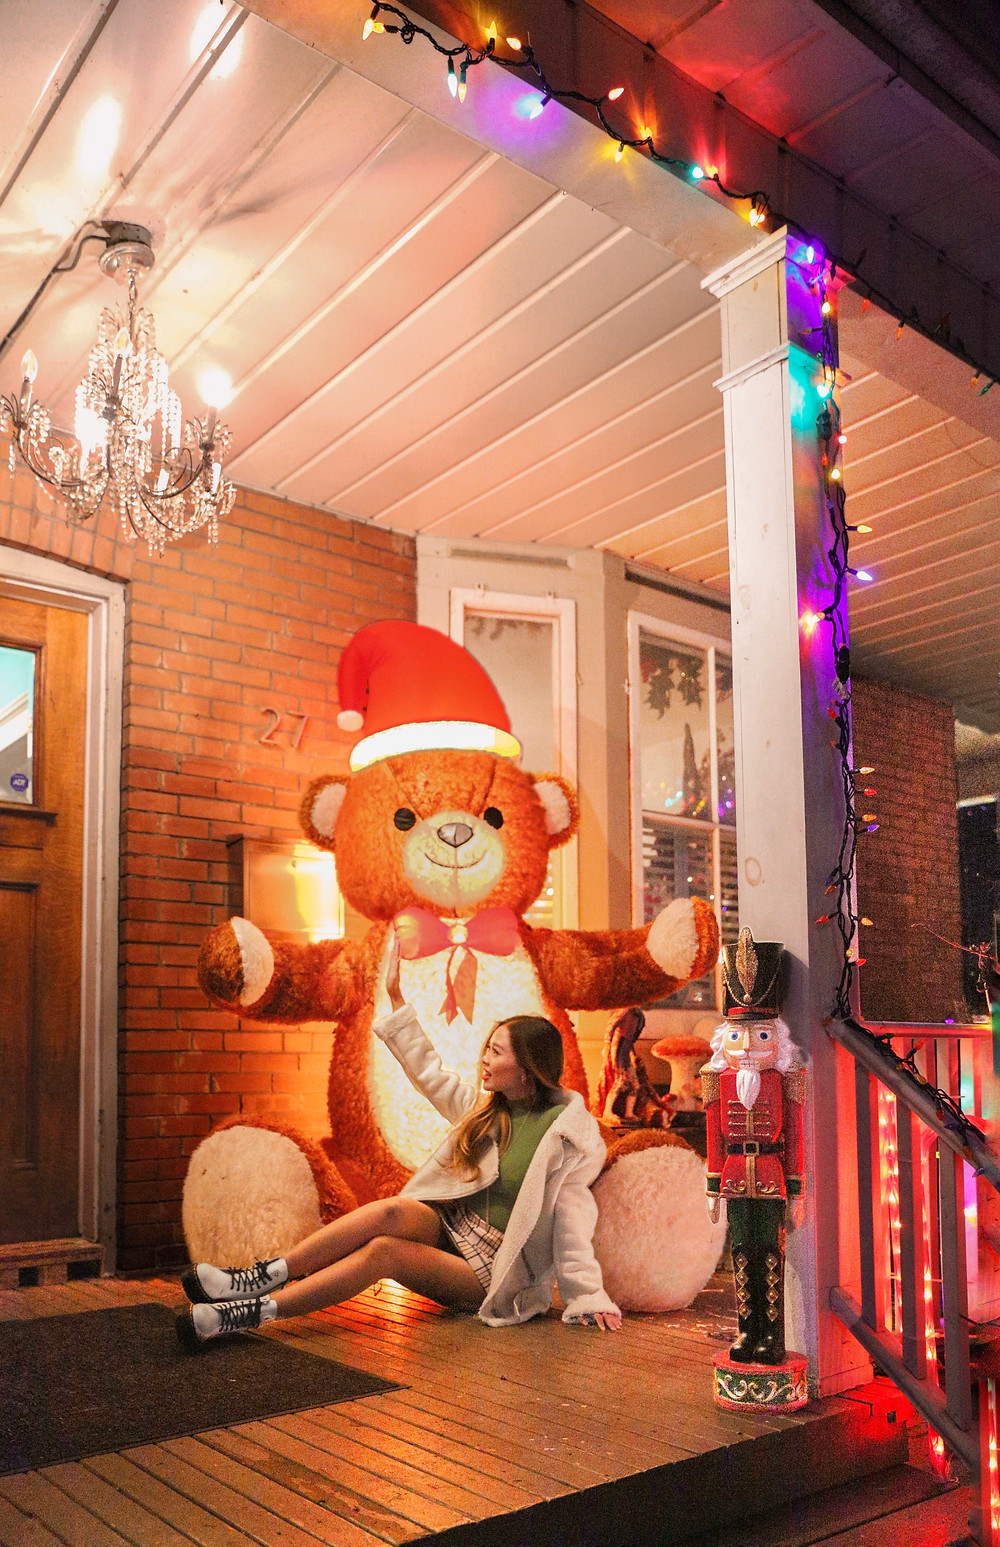 Girl sitting on porch next to oversized teddy bear